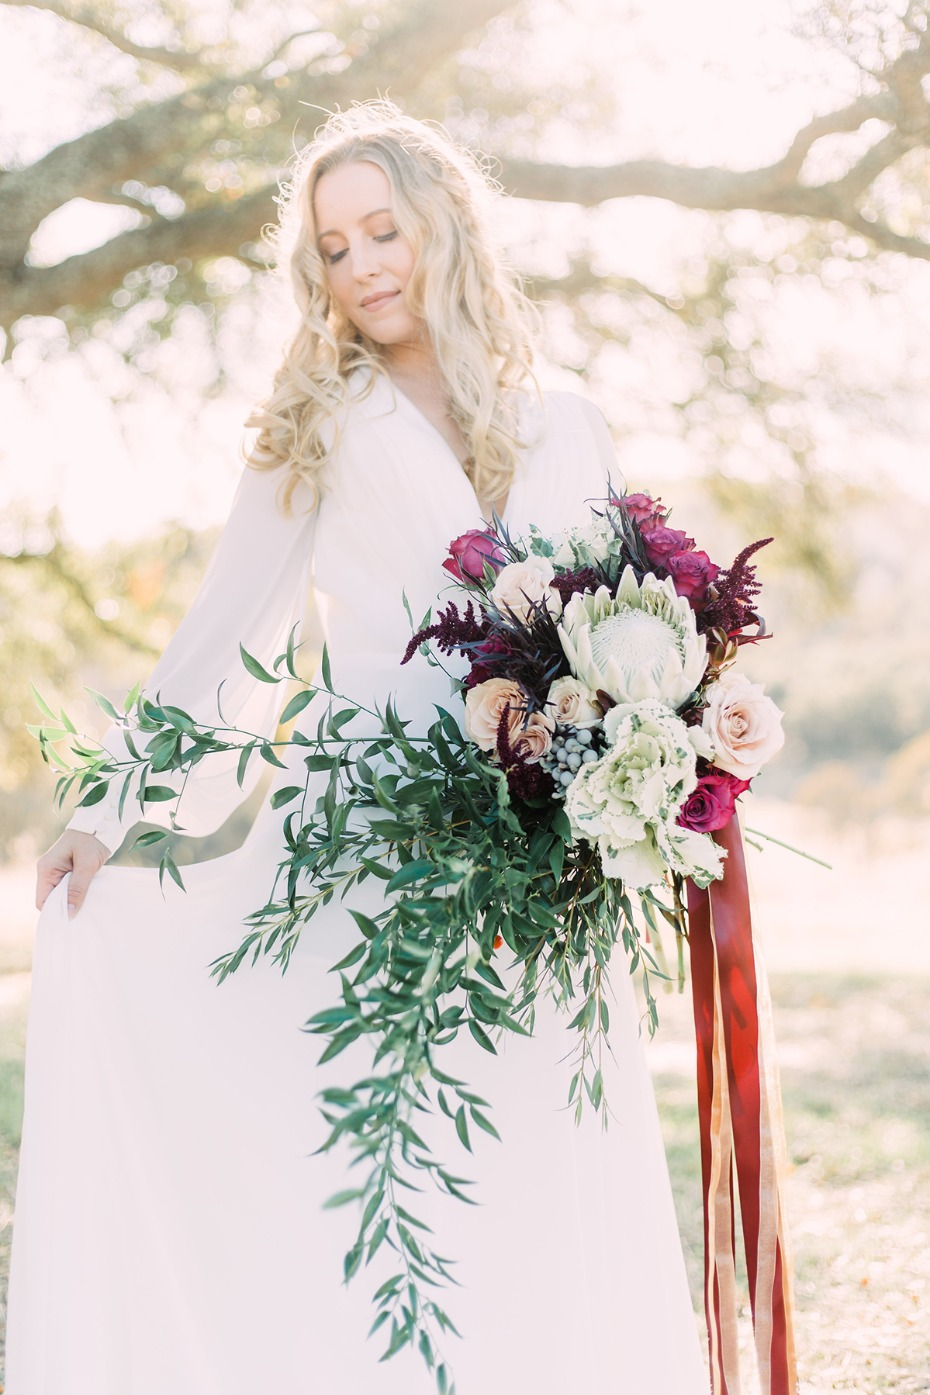 Asymmetrical bouquet with ribbons